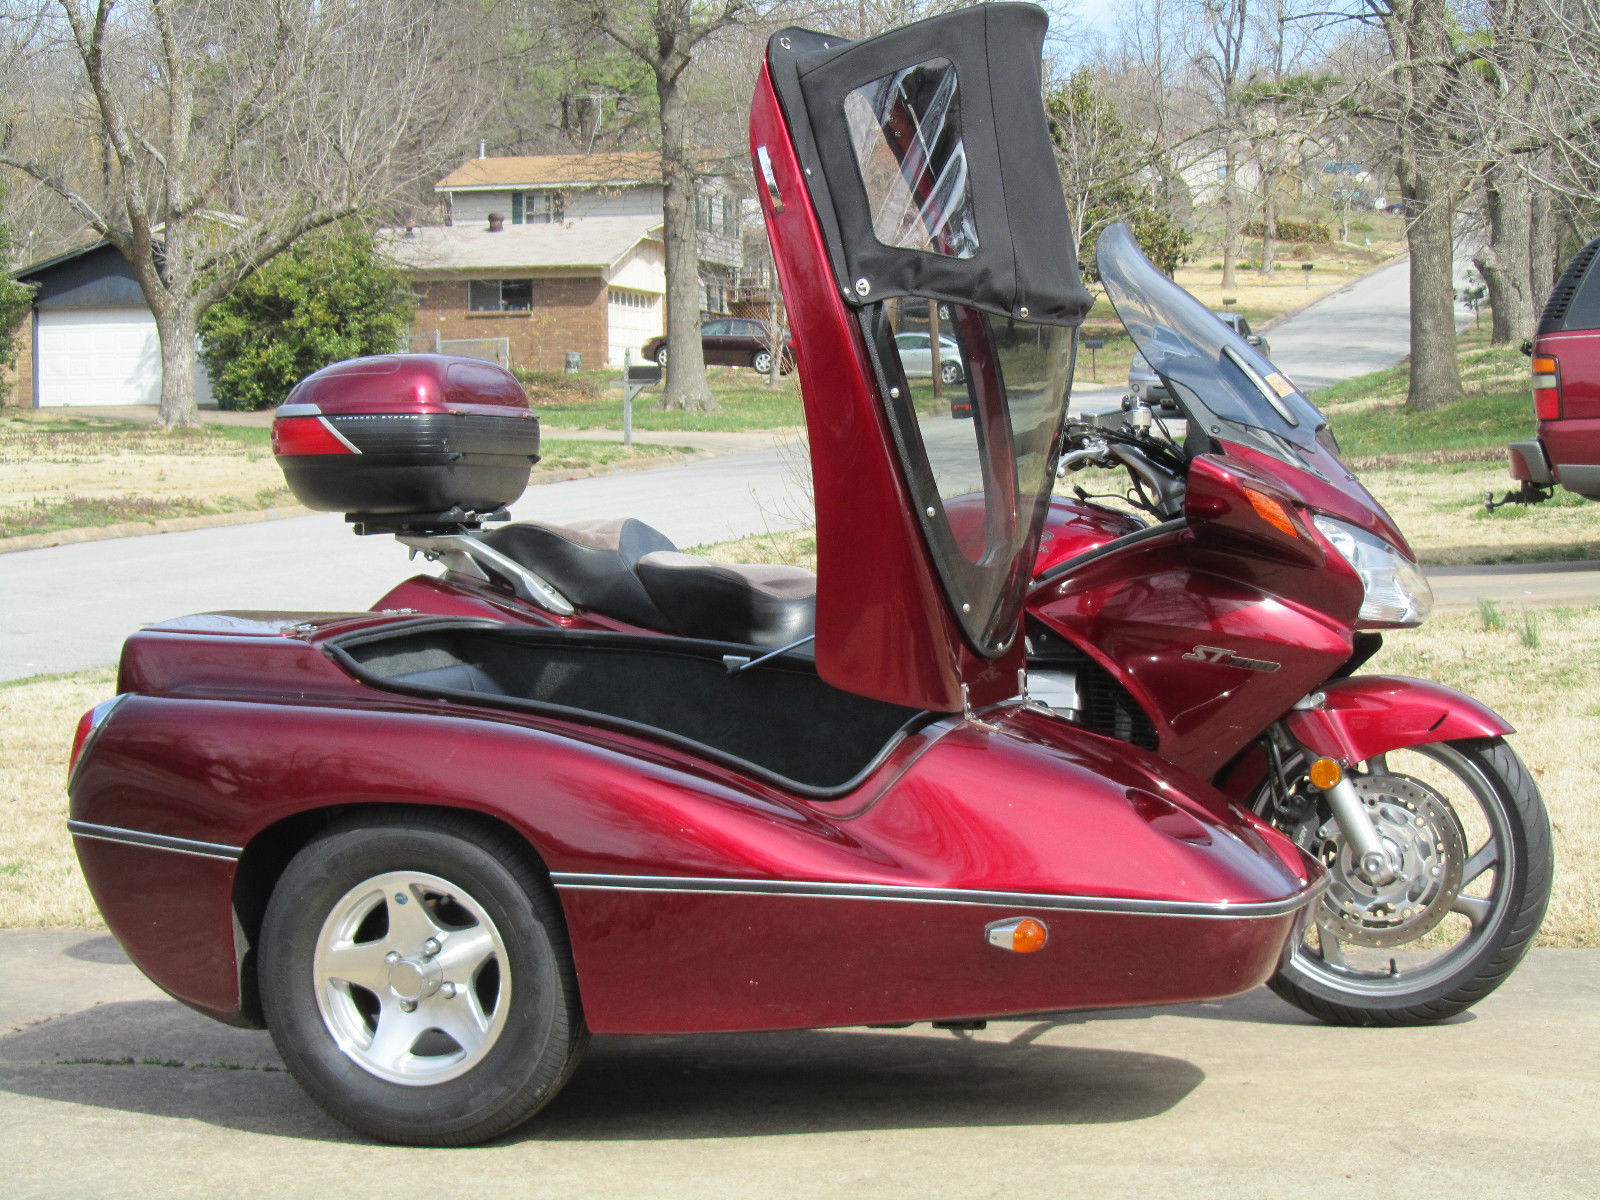 honda st1300 motorcycle with hannigan sidecar. Black Bedroom Furniture Sets. Home Design Ideas